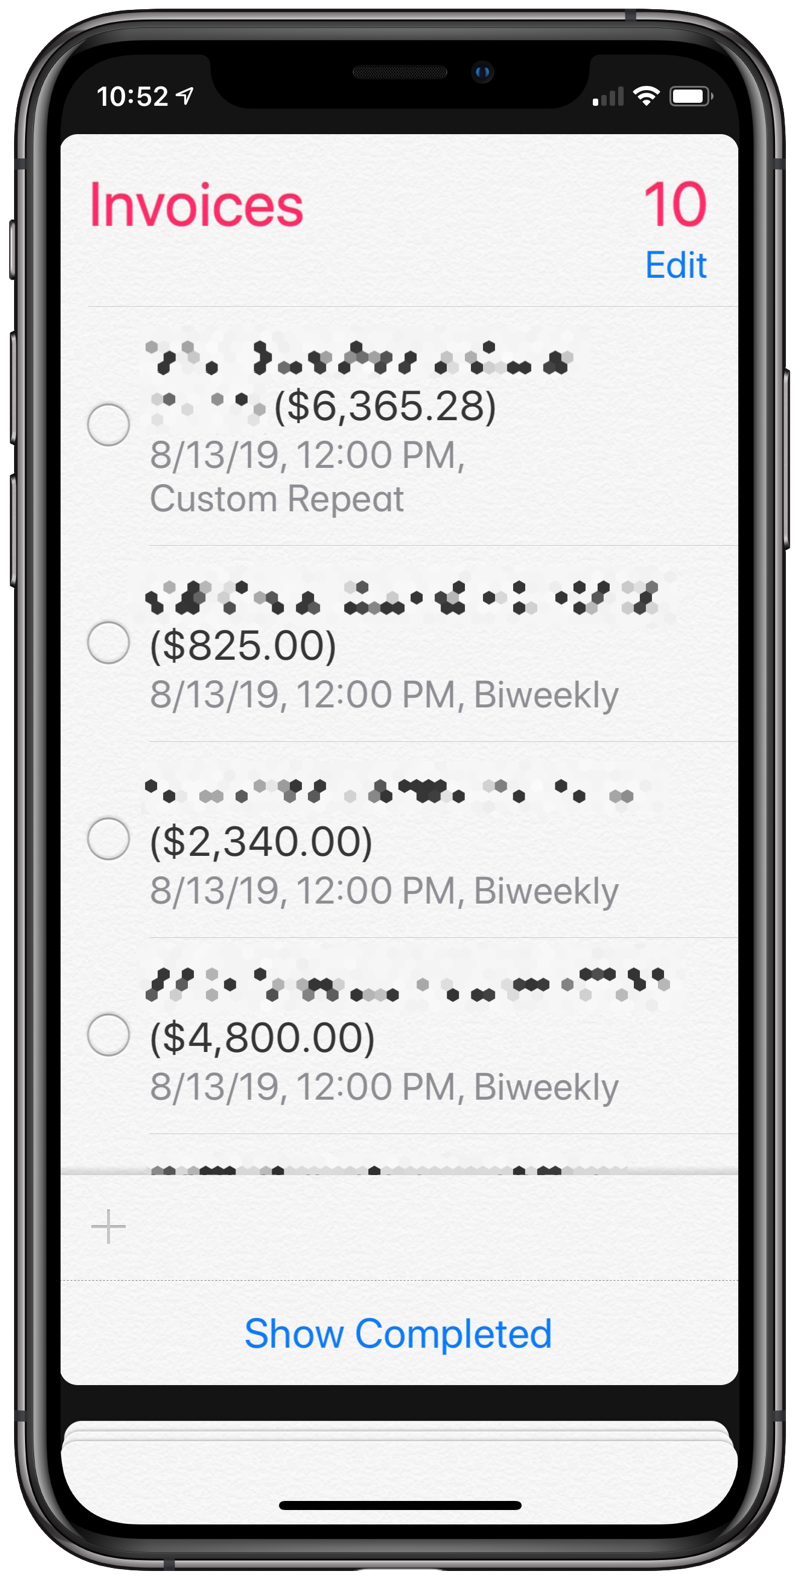 Invoice list in Reminders